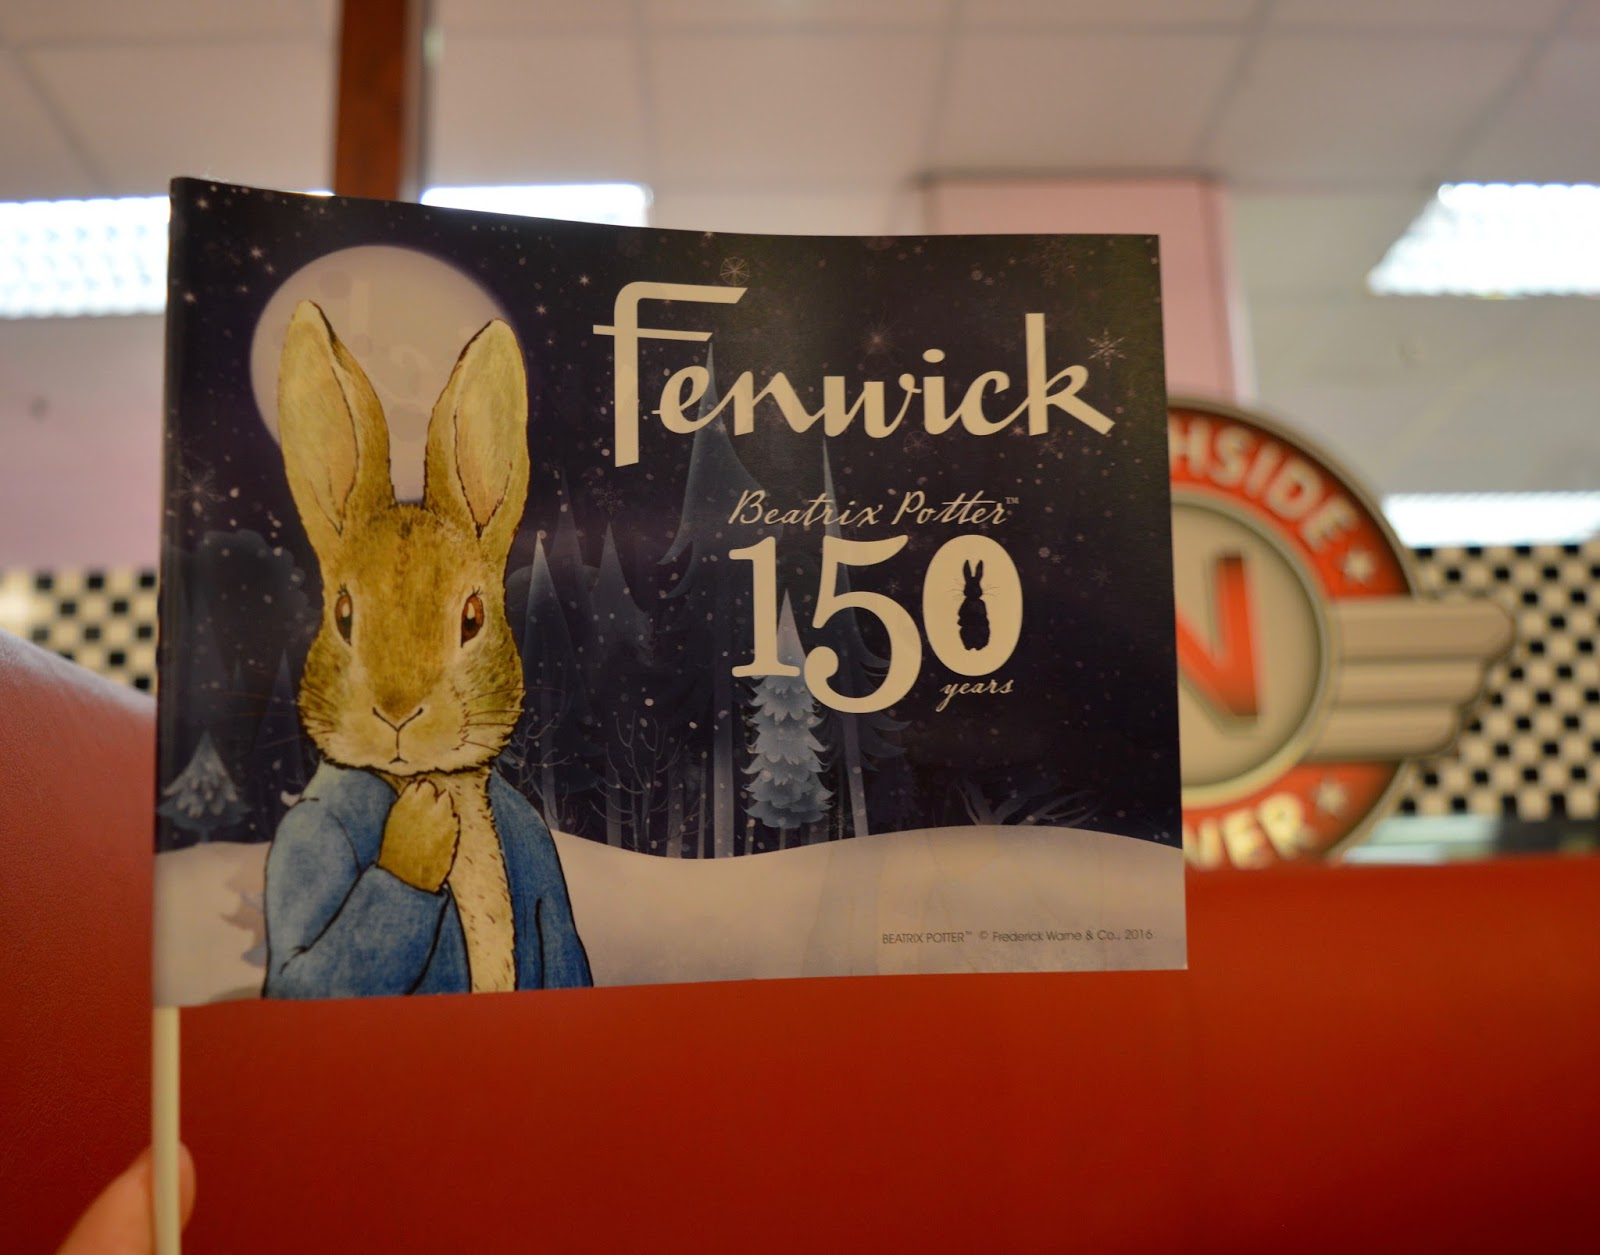 Fenwick's Window Newcastle 2016. Beatrix Potter / Peter Rabbit theme - Peter Rabbit flag